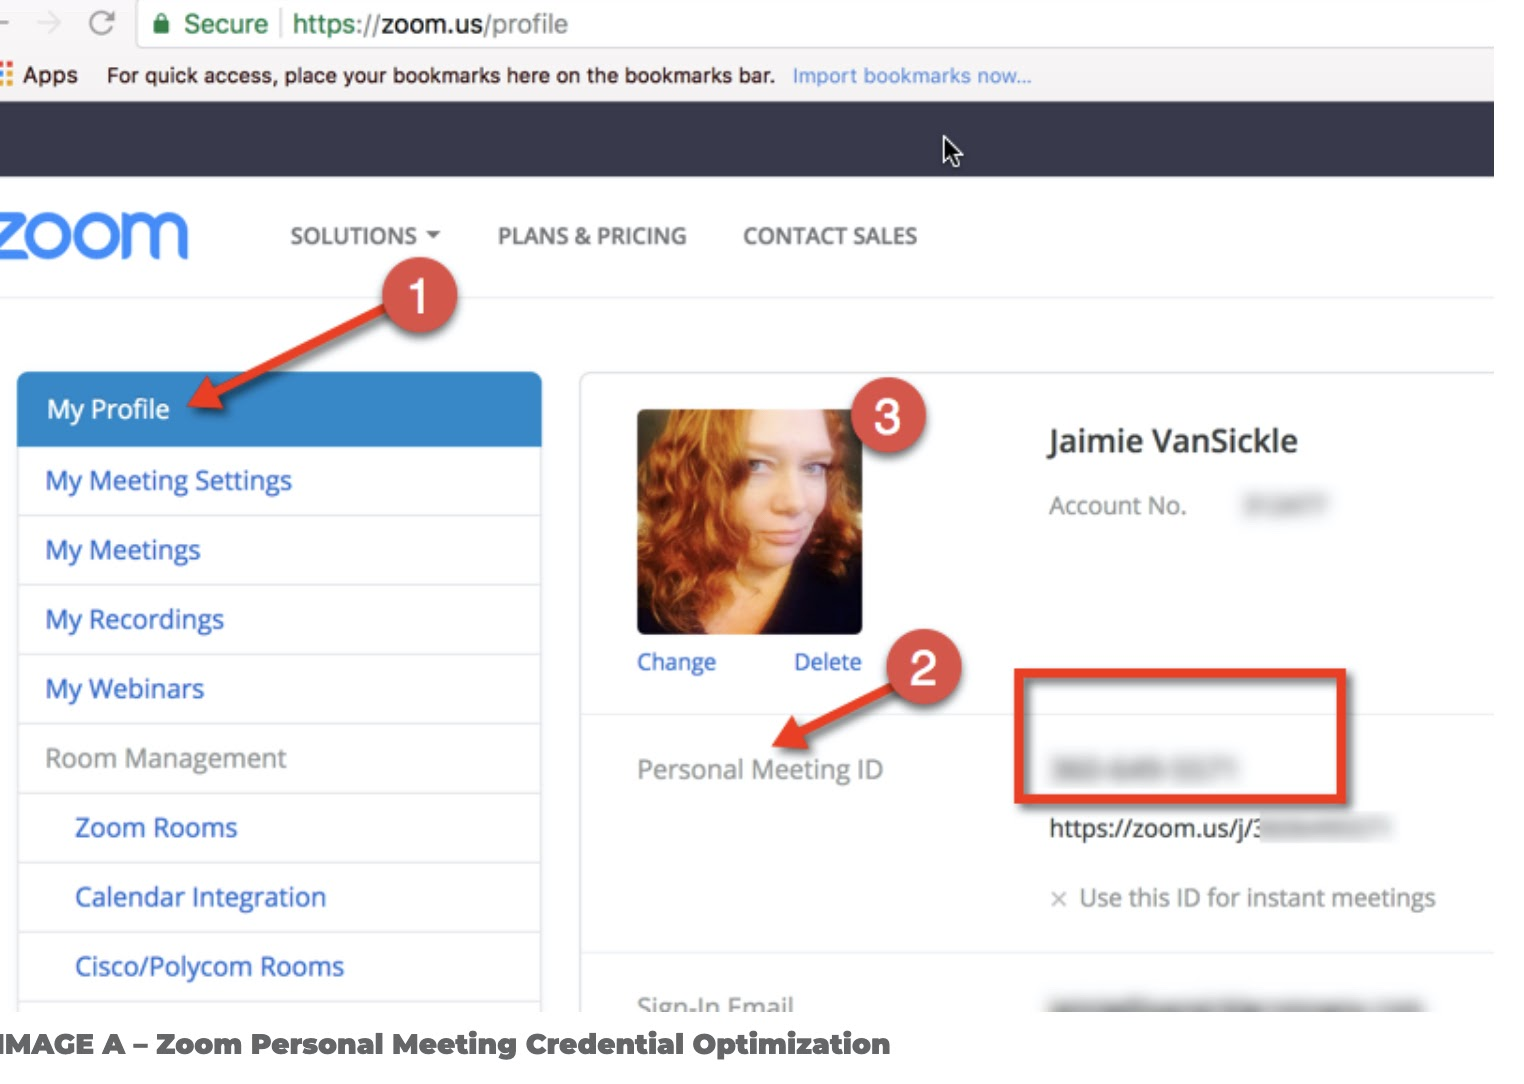 Set your zoom personal meeting ID